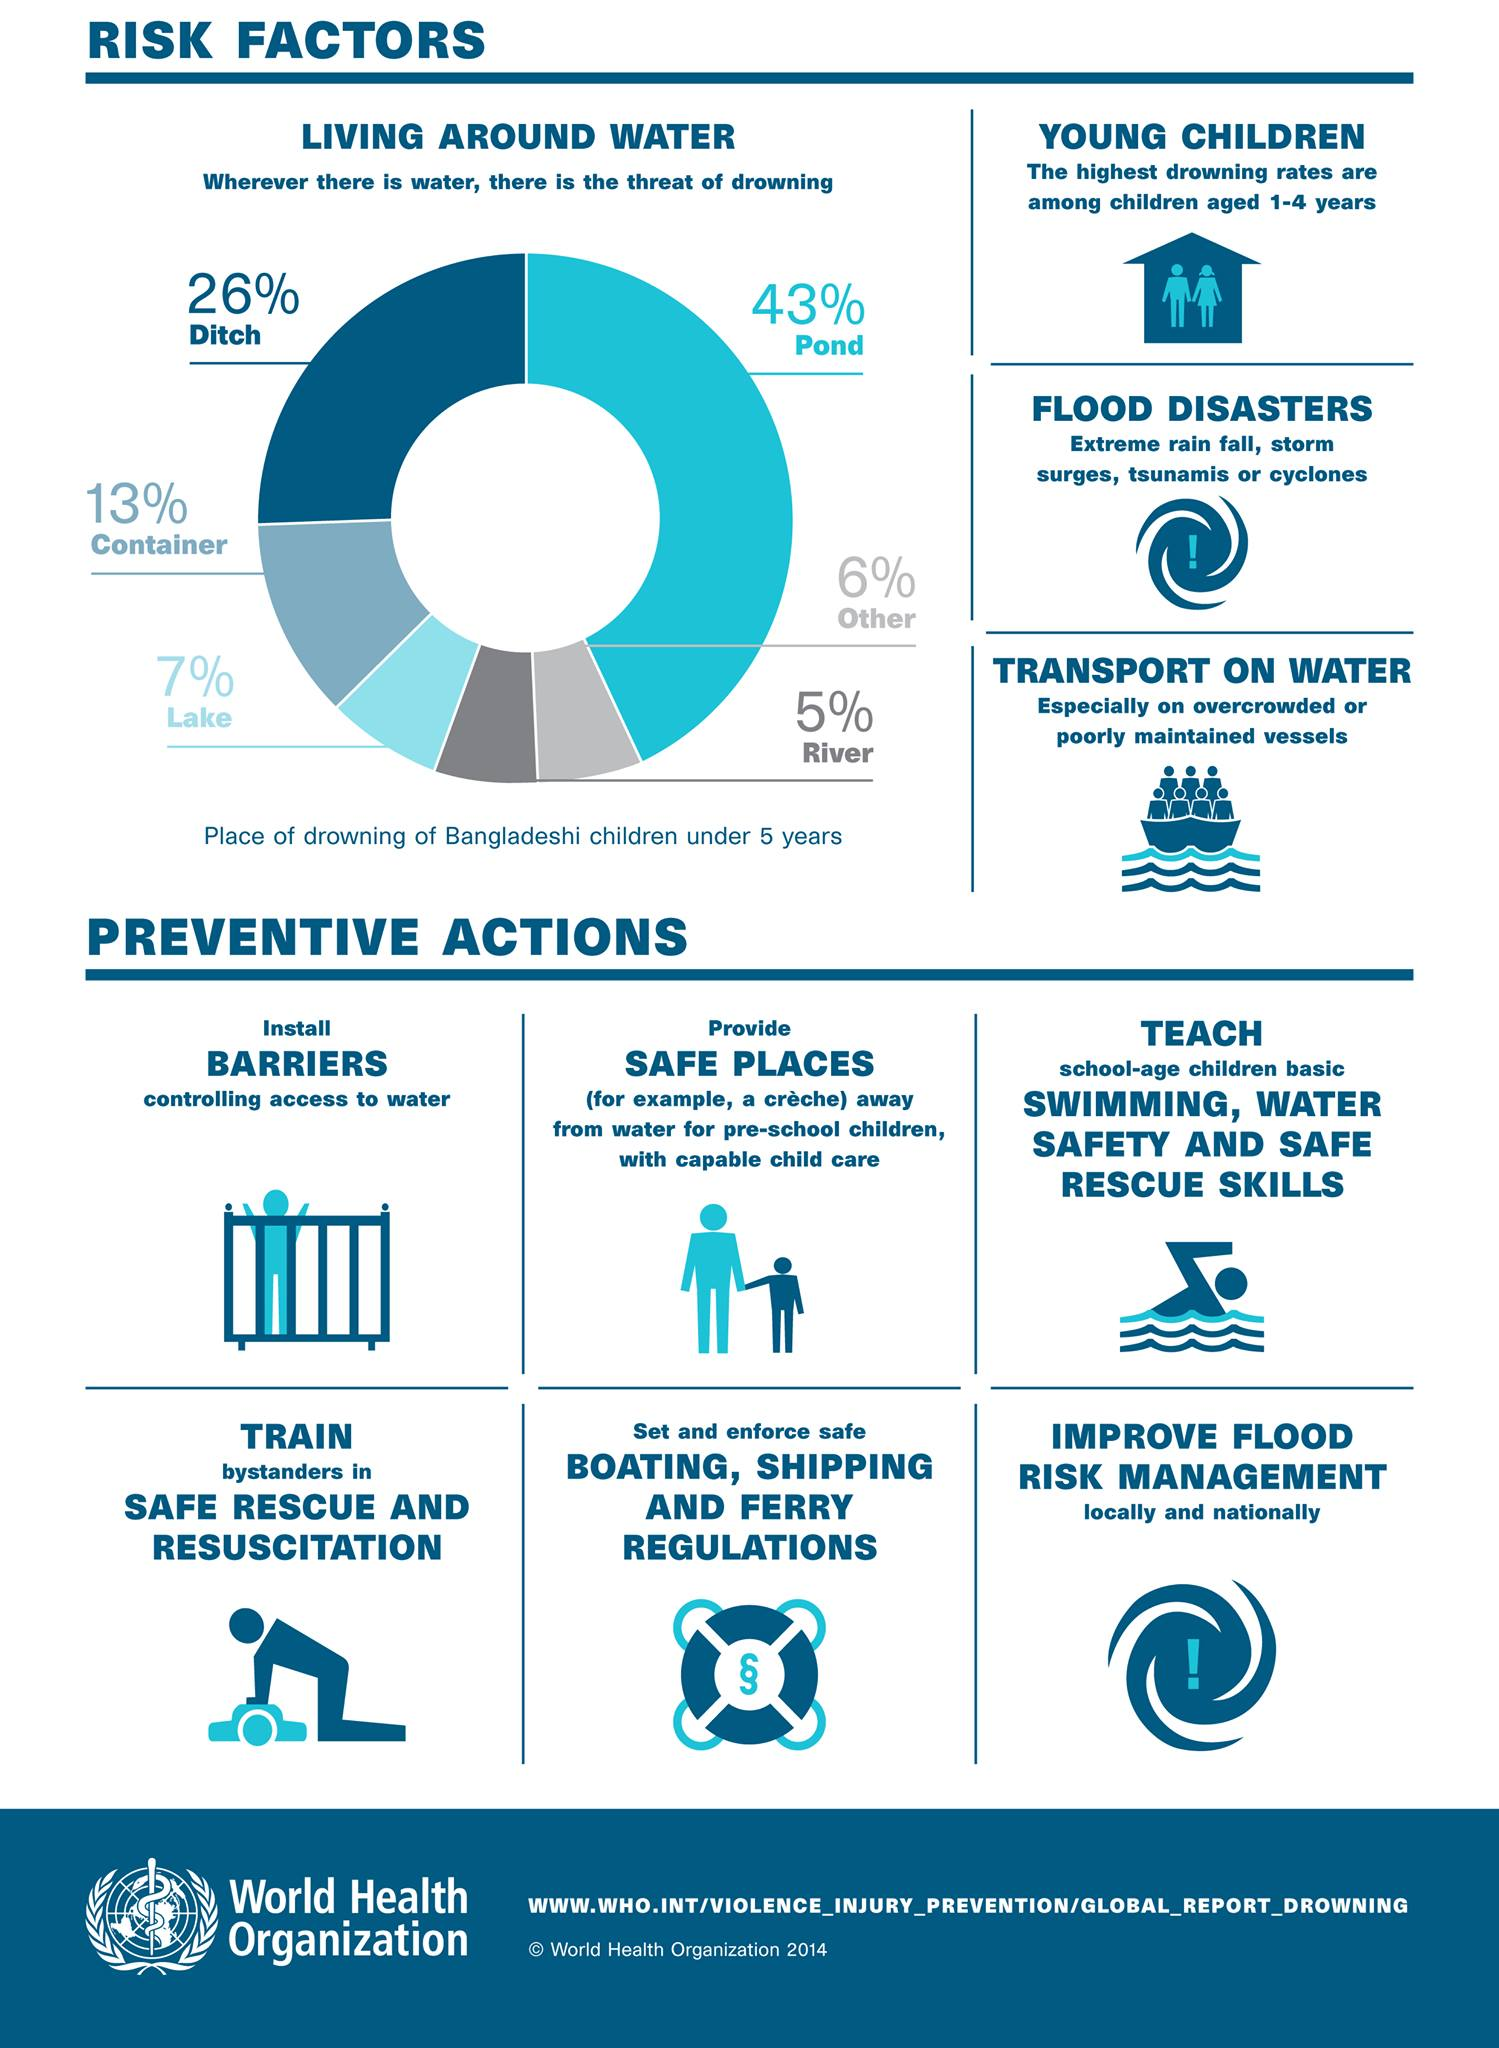 Drowning Risk Factors and Preventive Actions